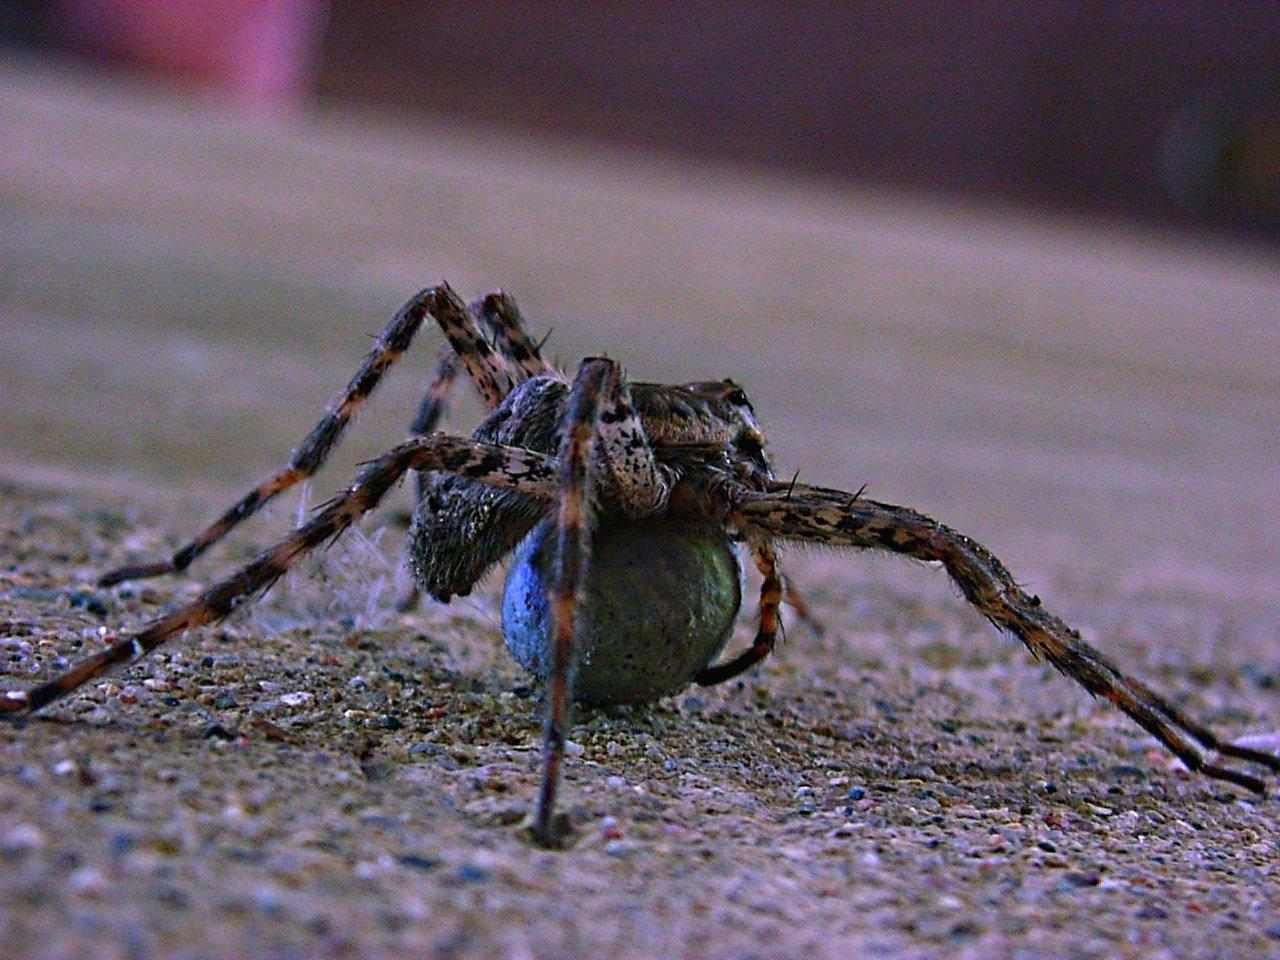 Dolomedes tenebrosus (Fishing Spider) with her egg sac ... photo by Thomas Peace 2014